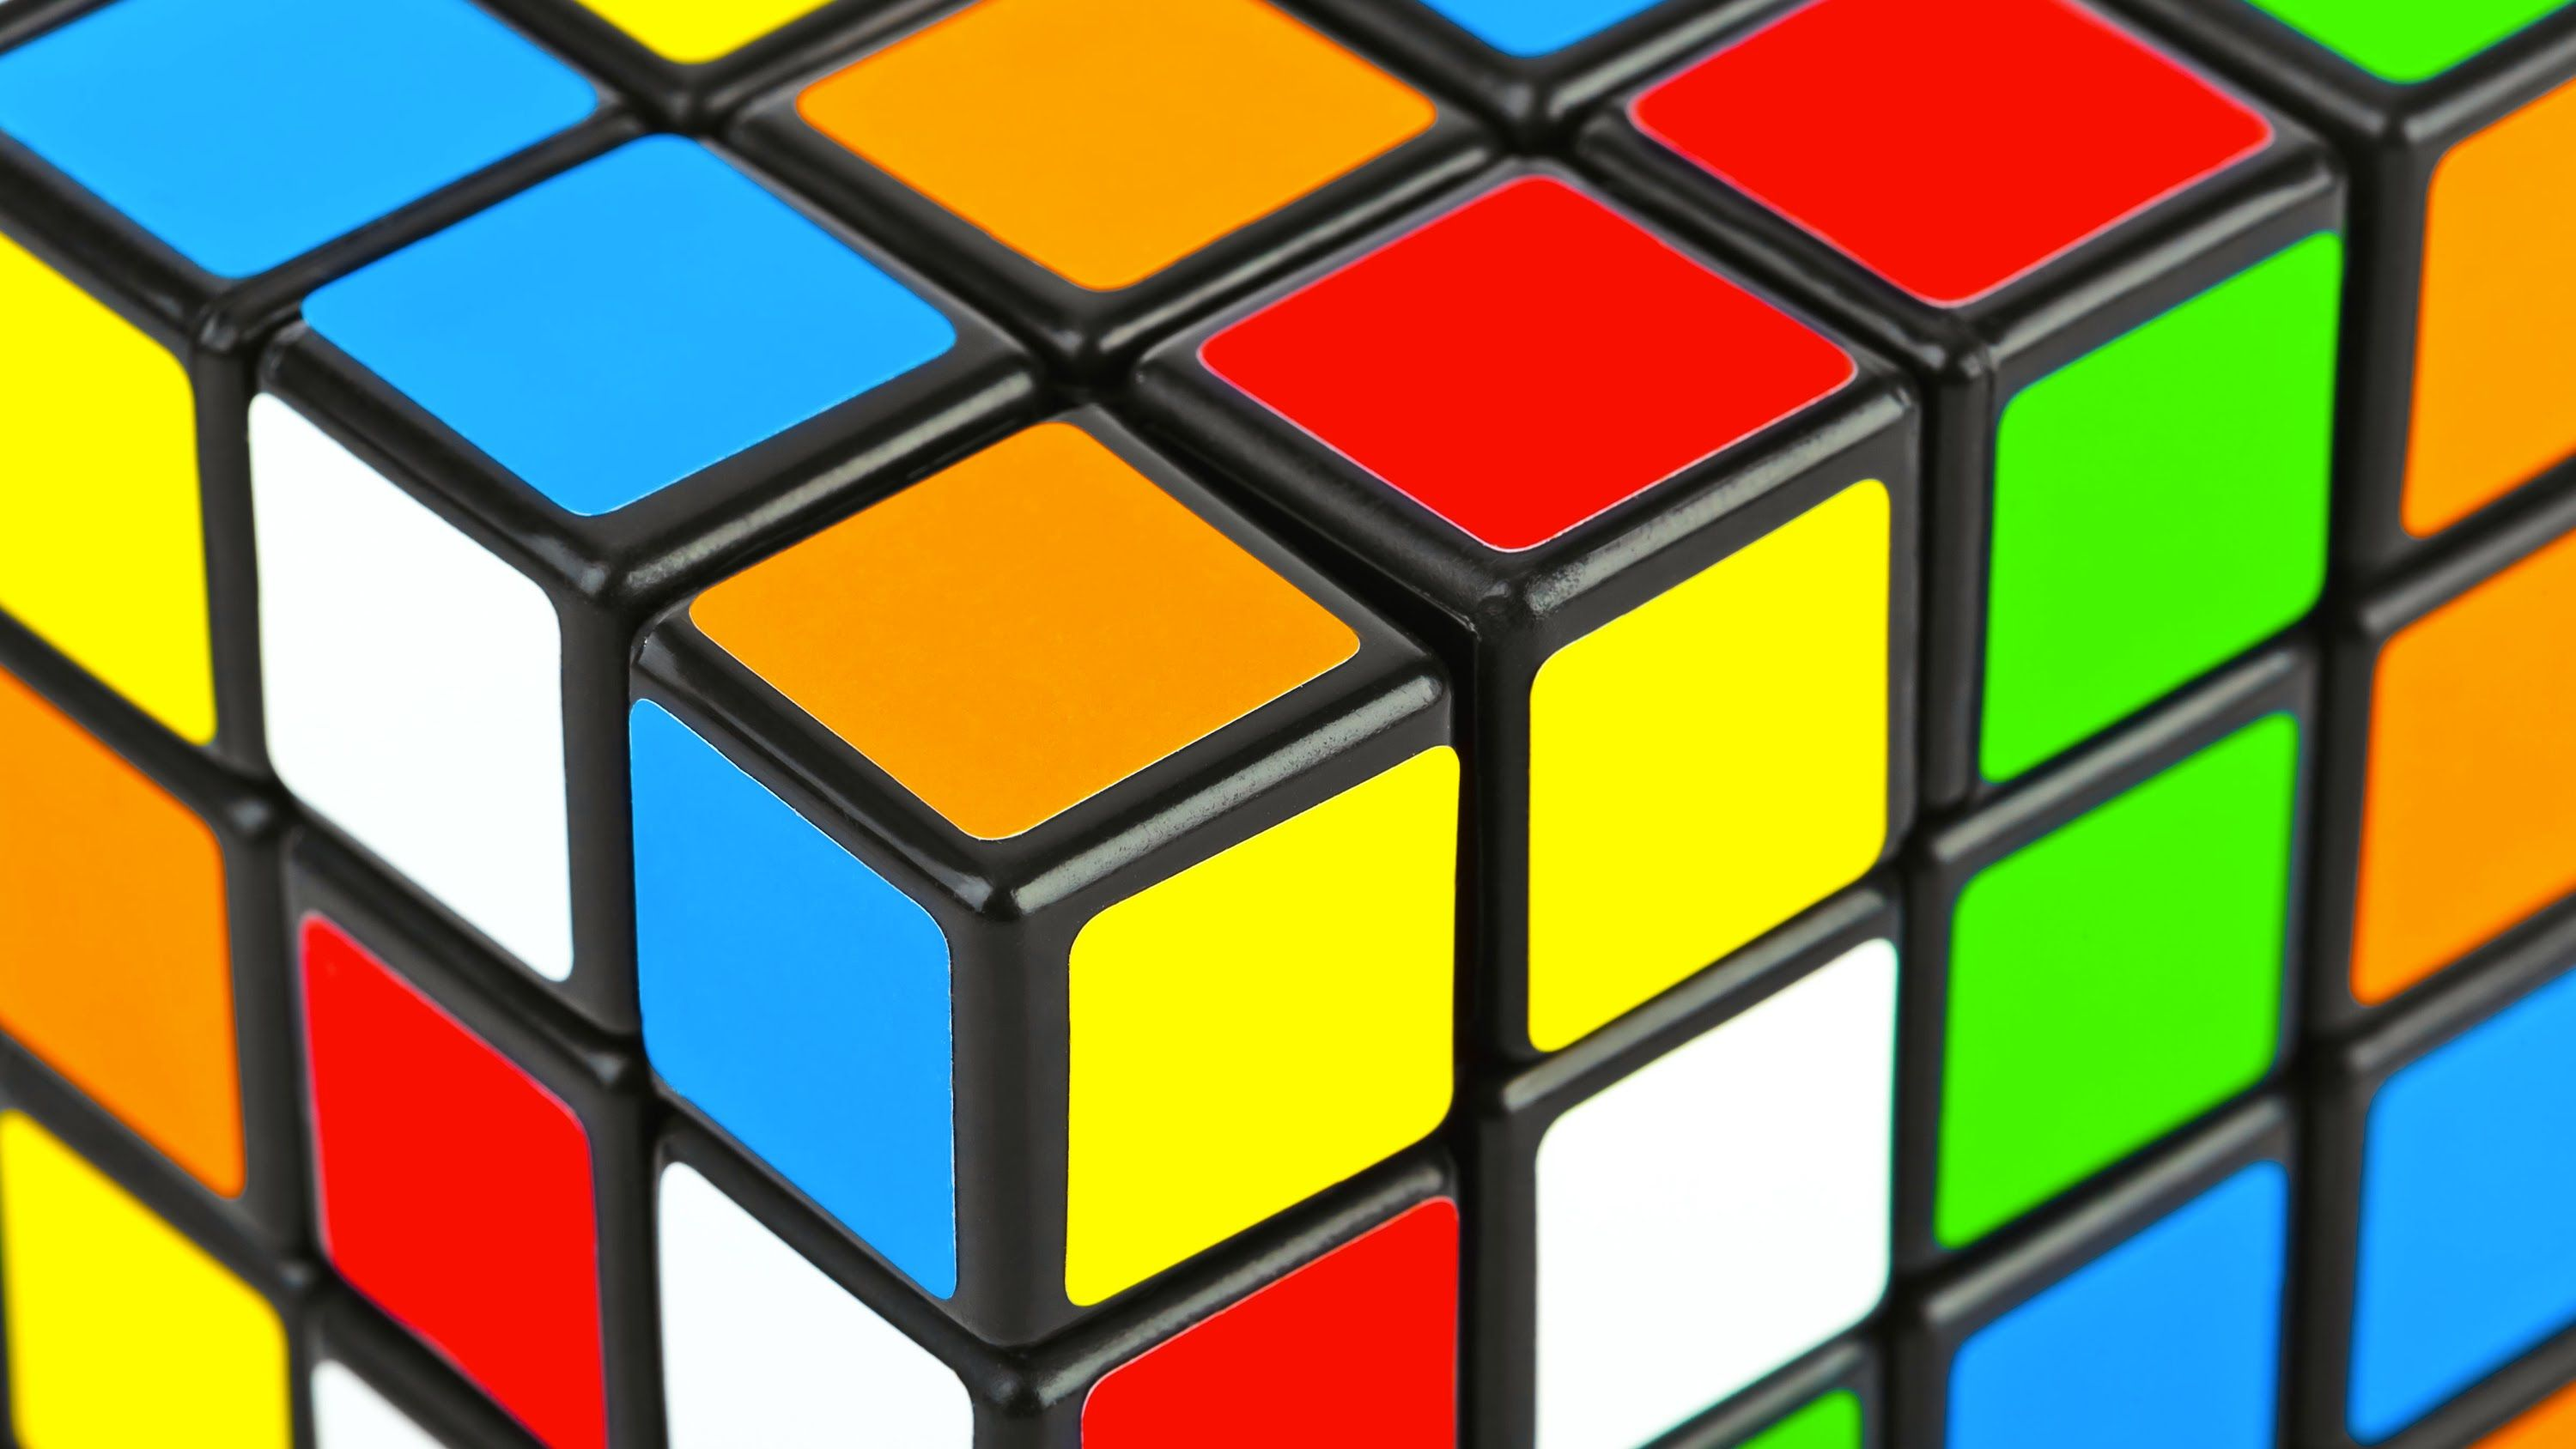 10 Things That Make You An 80's Kid Jigsaw puzzles, Cube